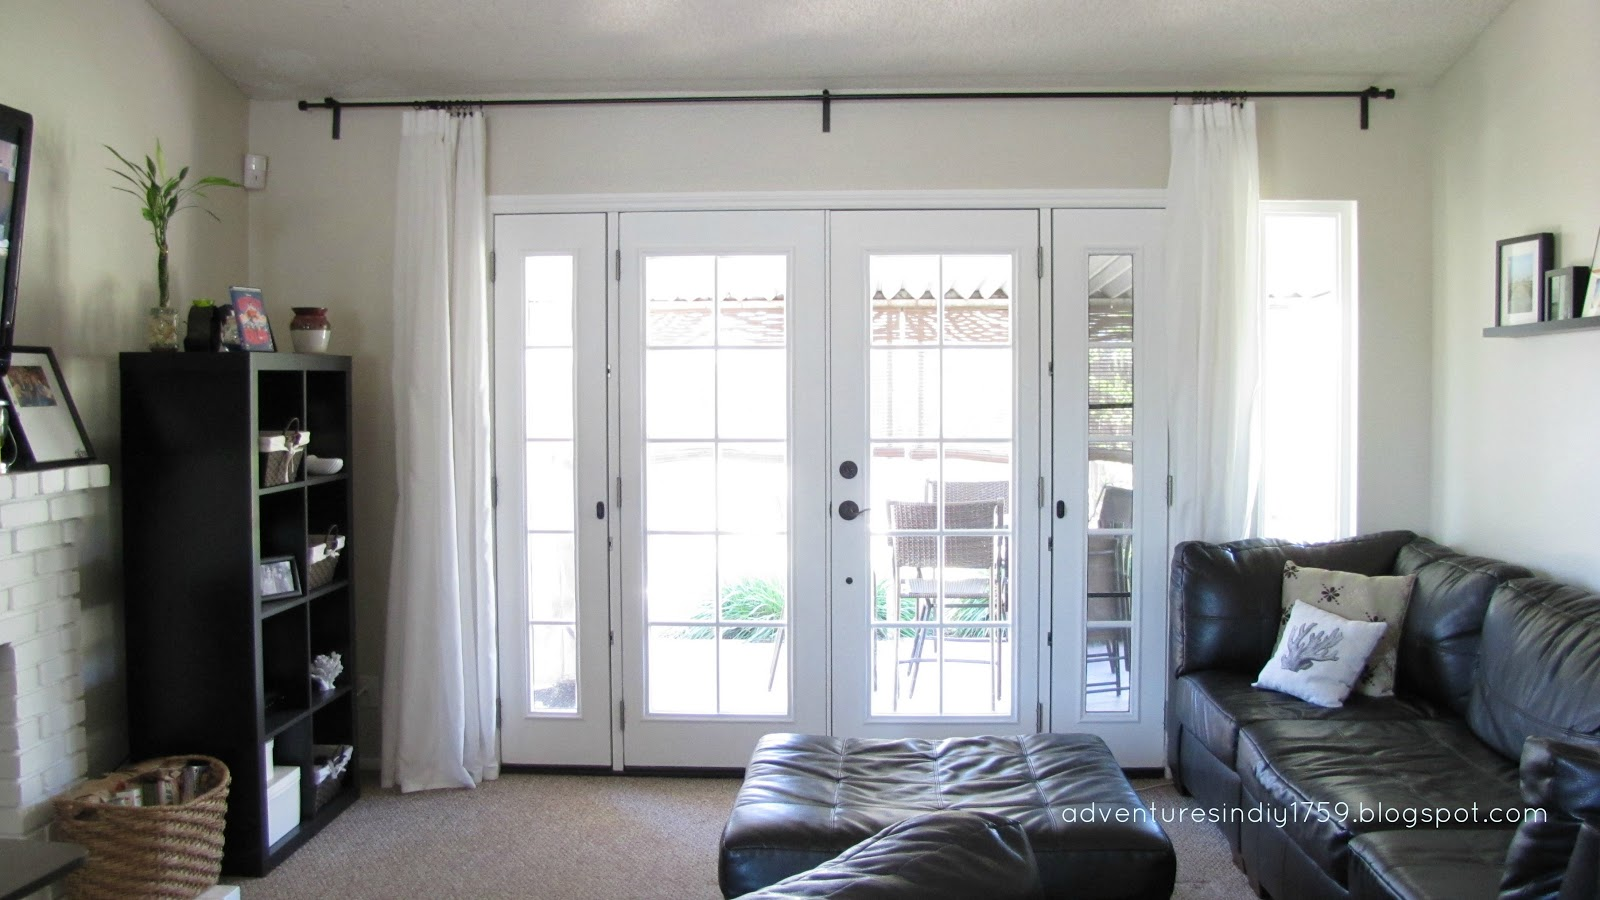 Adventures In Diy French Doors Window Treatment